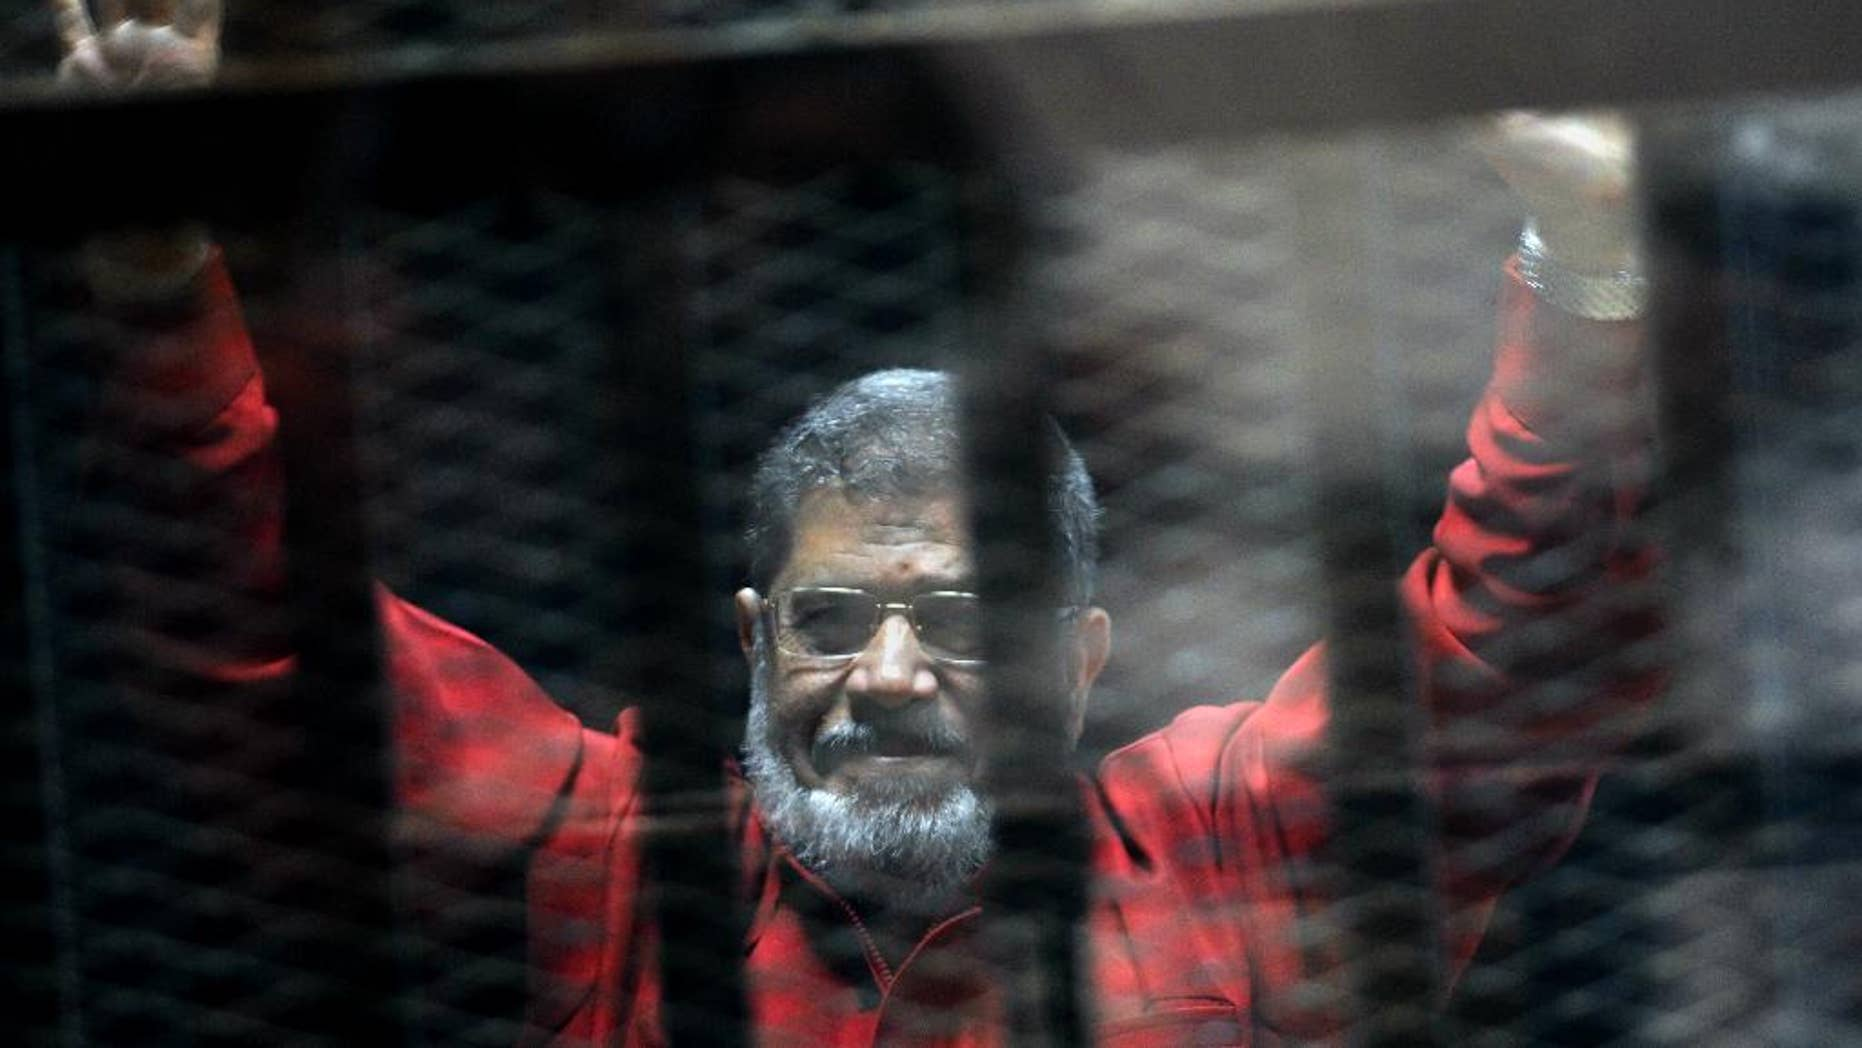 FILE - In this June 21, 2015 file photo, former Egyptian President Mohammed Morsi, wearing a red jumpsuit that designates he has been sentenced to death, raises his hands inside a defendants cage in a makeshift courtroom at the national police academy, in an eastern suburb of Cairo, Egypt. An Egyptian court struck down on Tuesday, Nov. 22, 2016 a life sentence and ordered the retrial of ousted Islamist President Mohammed Morsi on charges of conspiring with foreign militant groups, including the Palestinian Hamas. The decision comes nearly 17 months after the initial sentence against Morsi, who hails from the now-banned Muslim Brotherhood. Along with Morsi's life sentence, those of 16 others, including the group's spiritual leader Mohammed Badei, were thrown out. (AP Photo/Ahmed Omar, File)